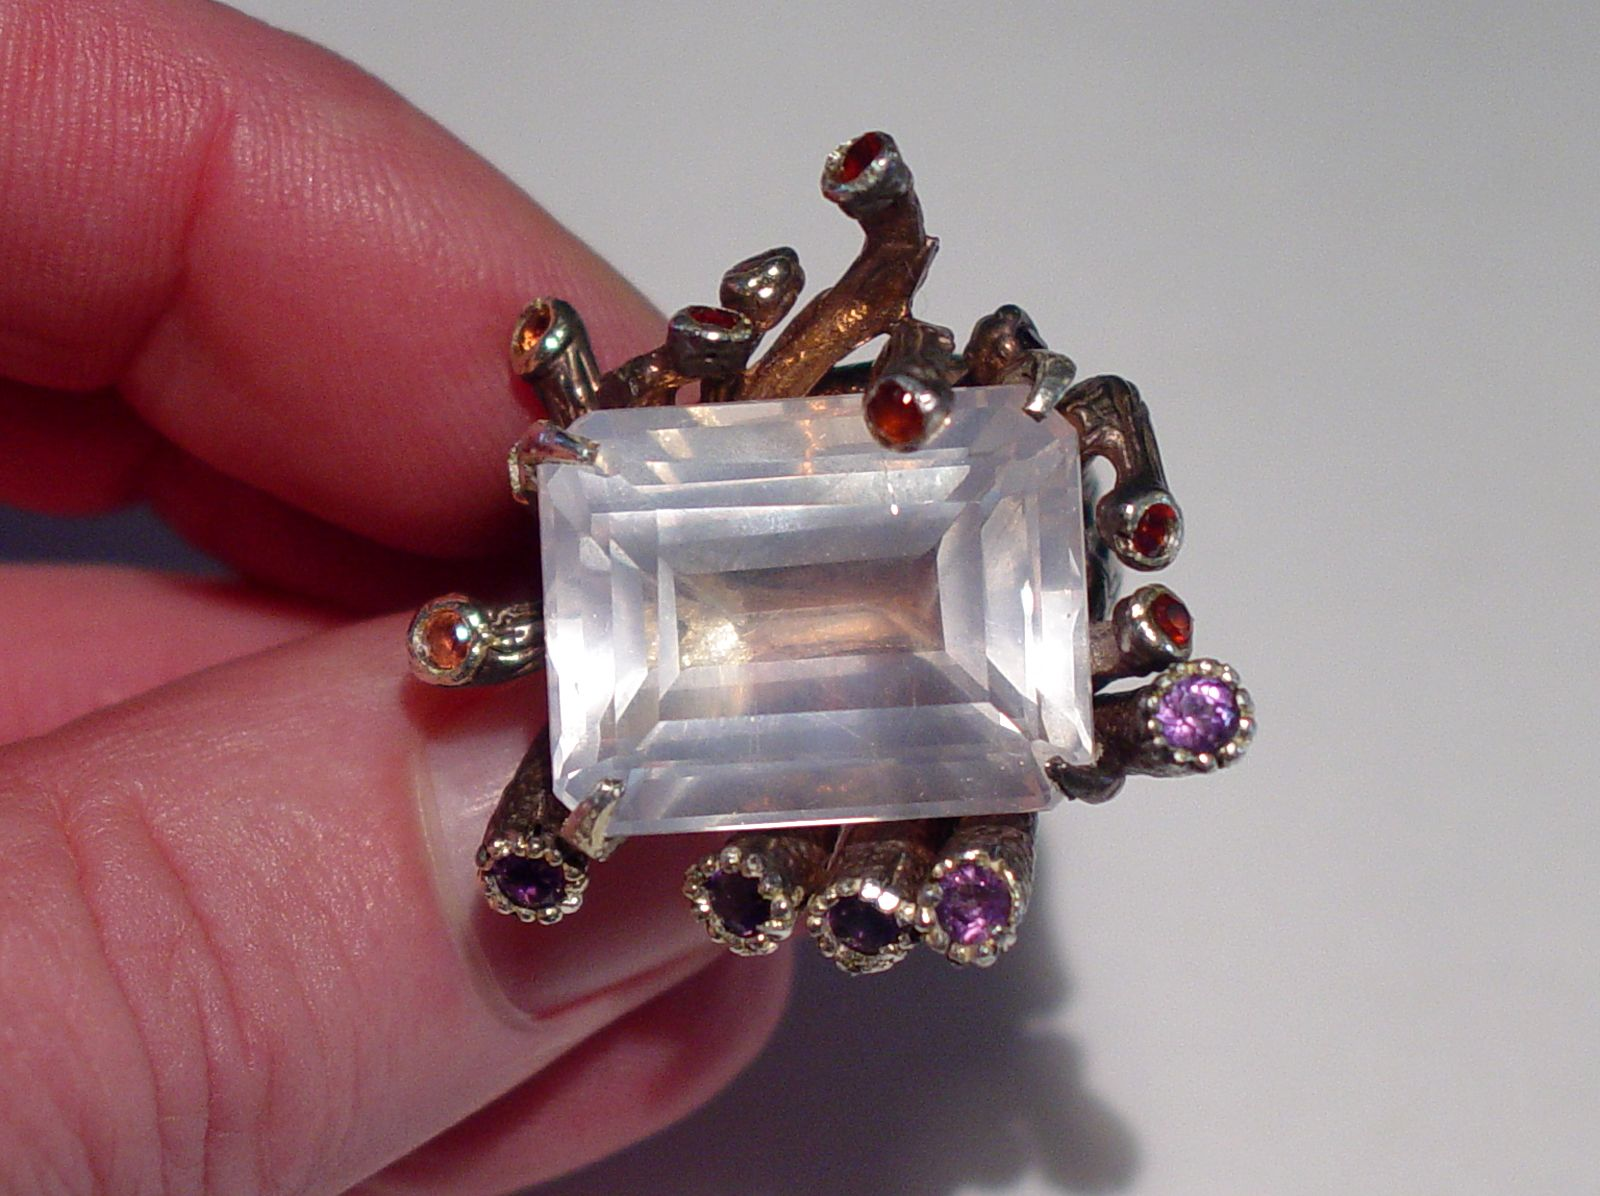 MASSIVE DESIGNER BORA YASAR 14K STERLING ROSE QUARTZ GEMSTONE